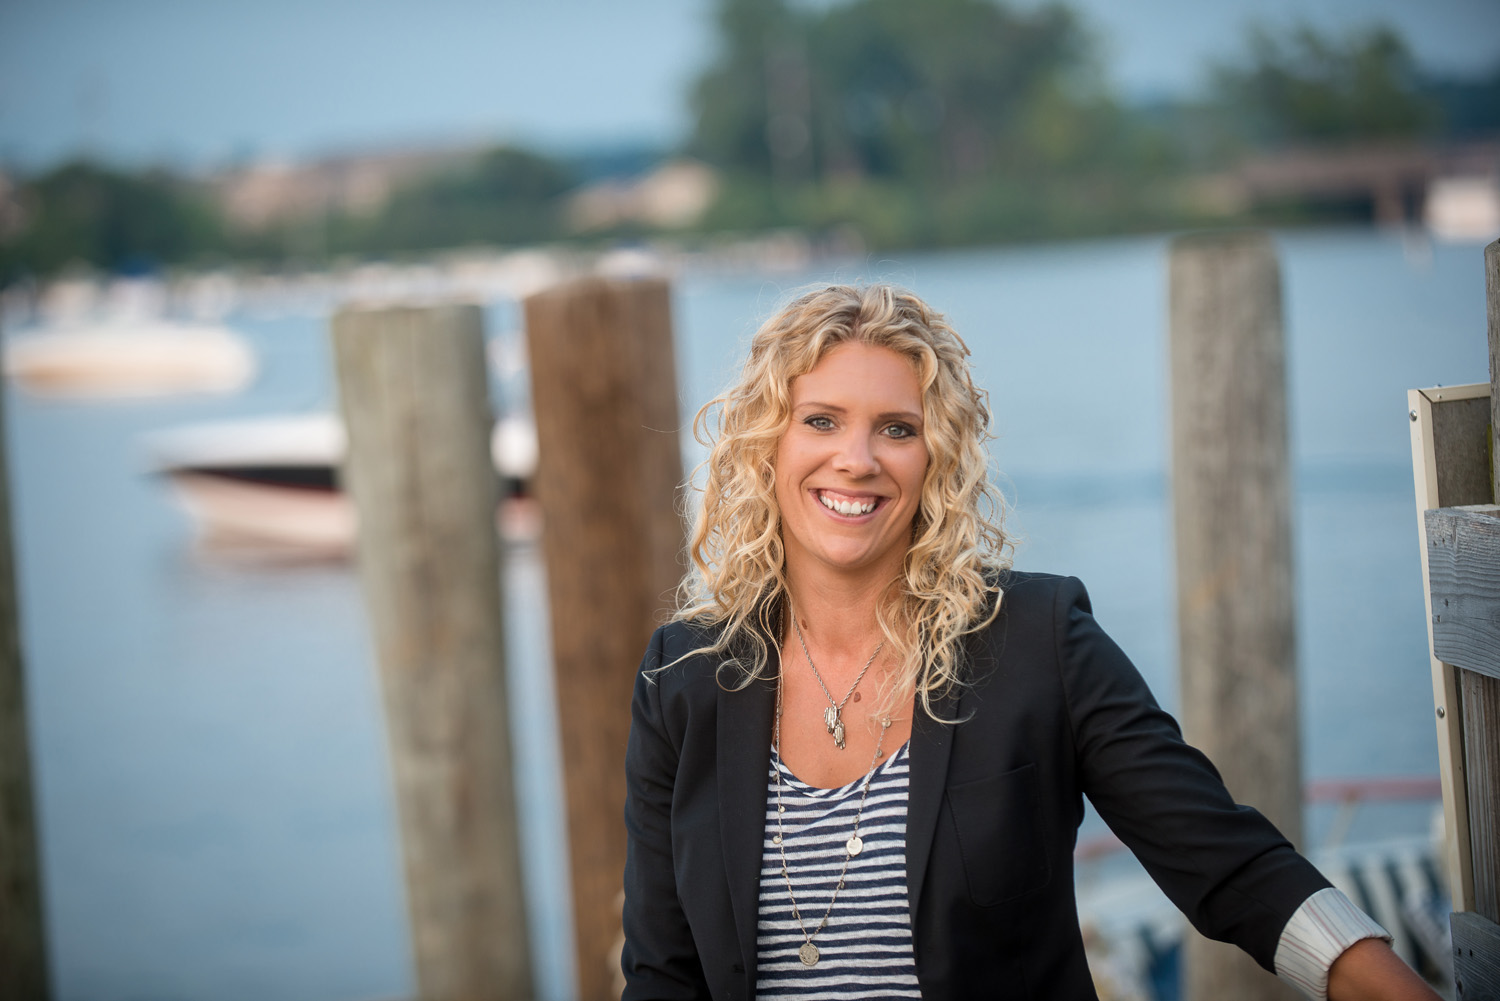 Shoreline Insurance Group owner Allison Kraus pictured in Excelsior Bay.